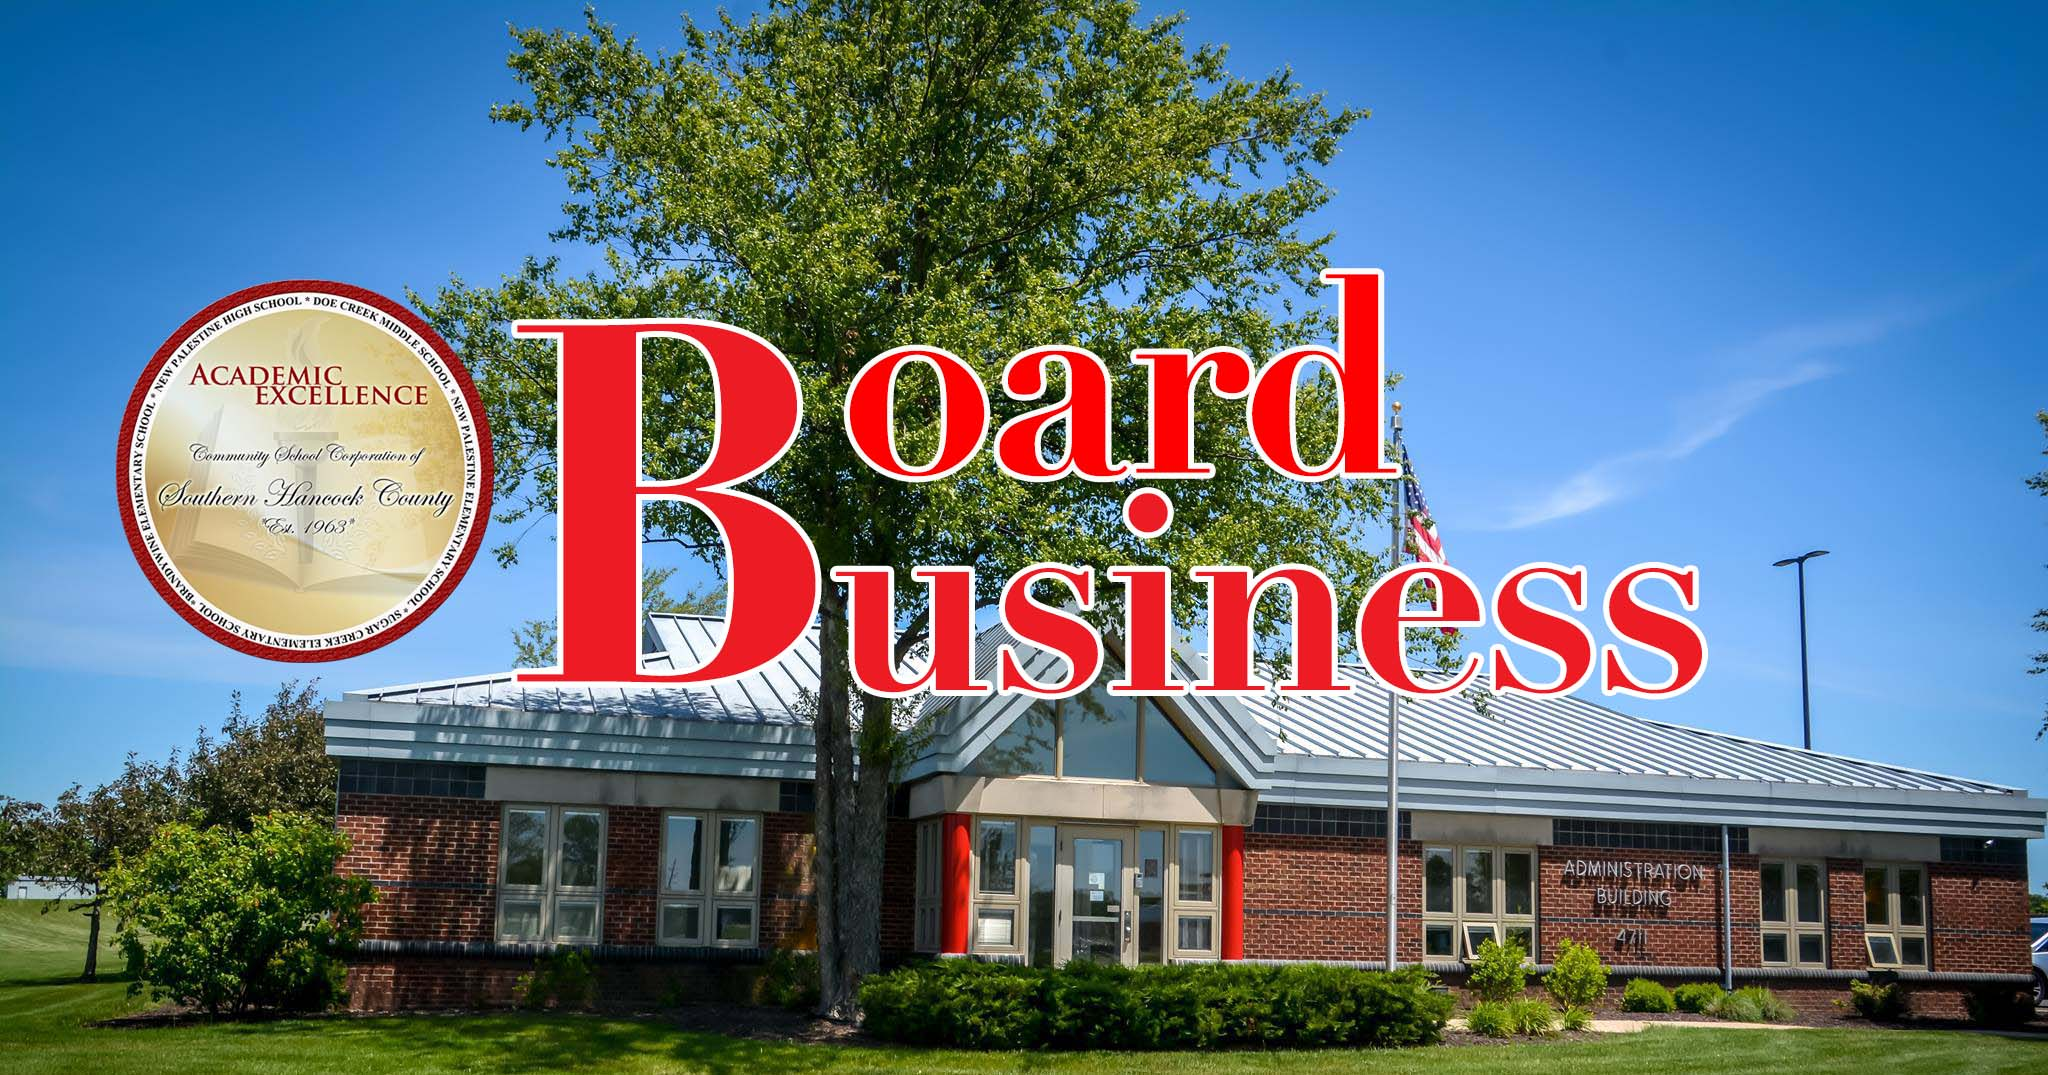 Board Business